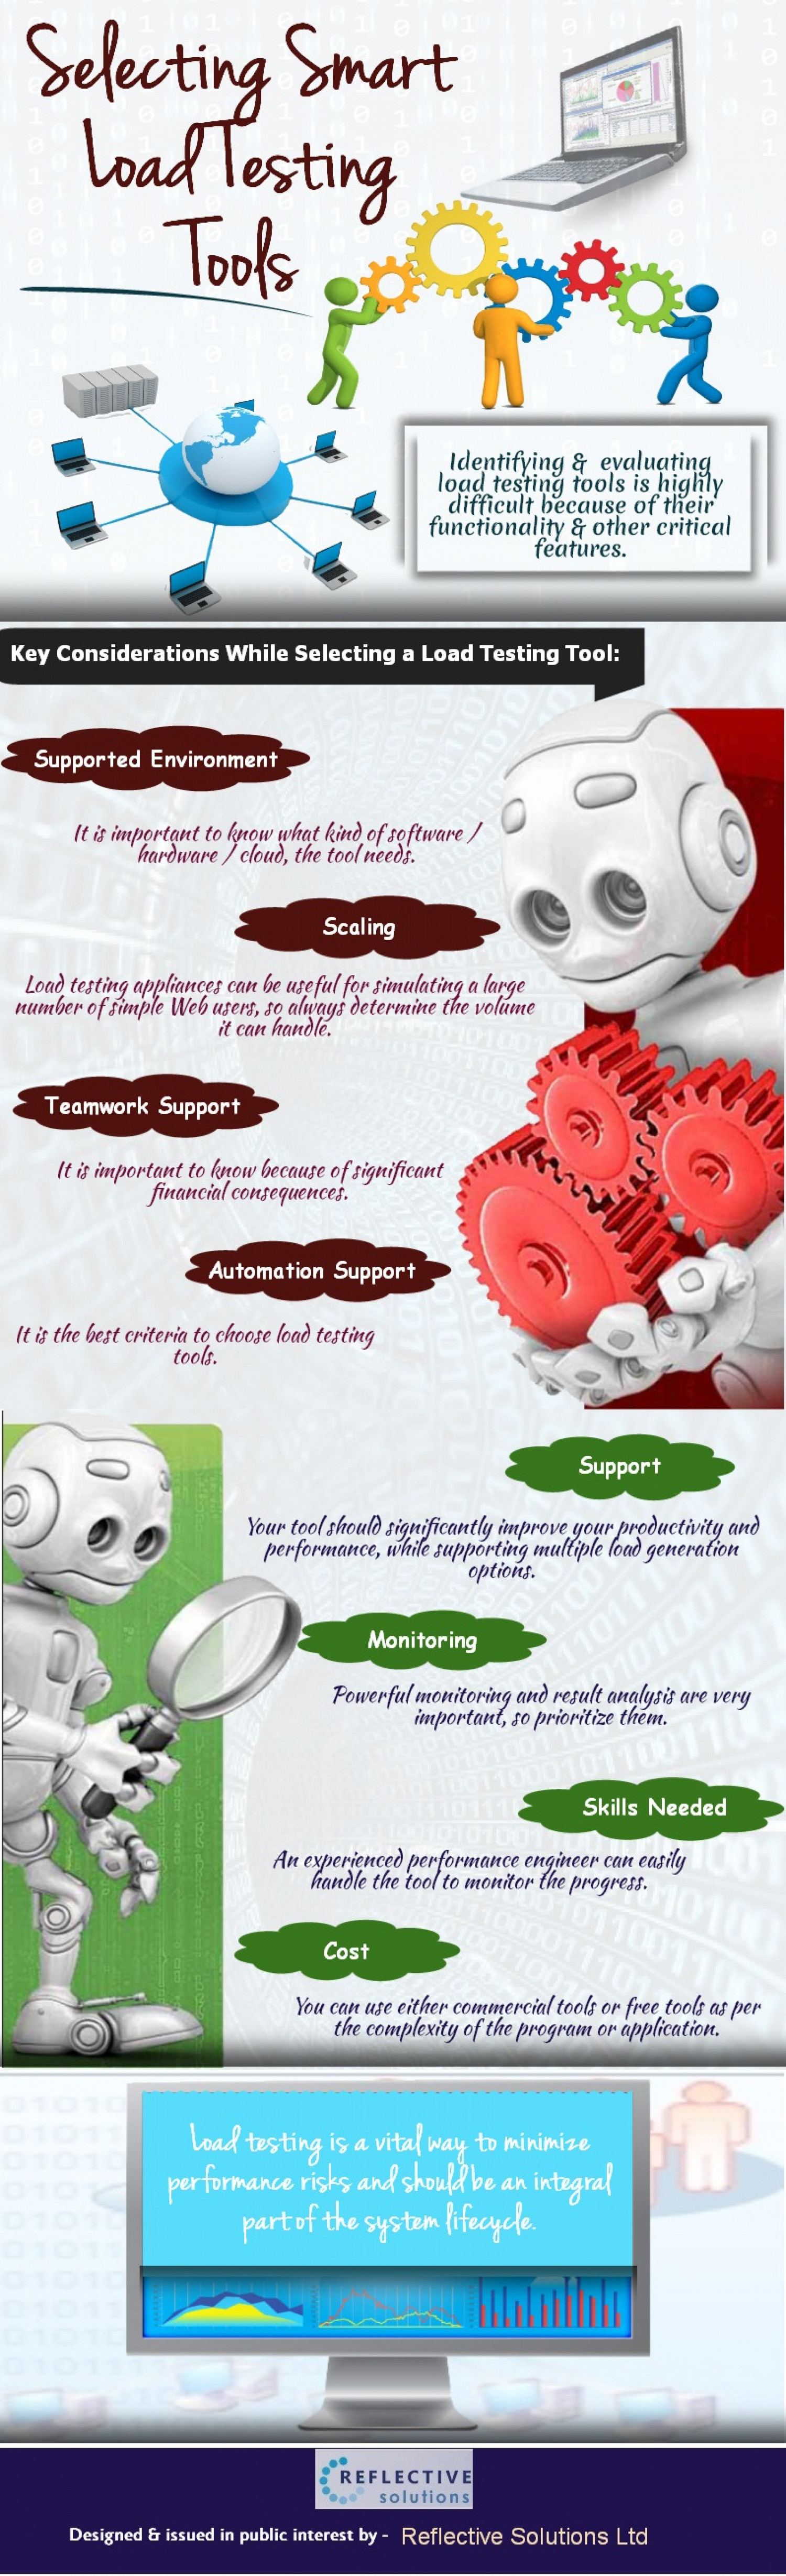 Selecting Smart Load Testing Tools Infographic